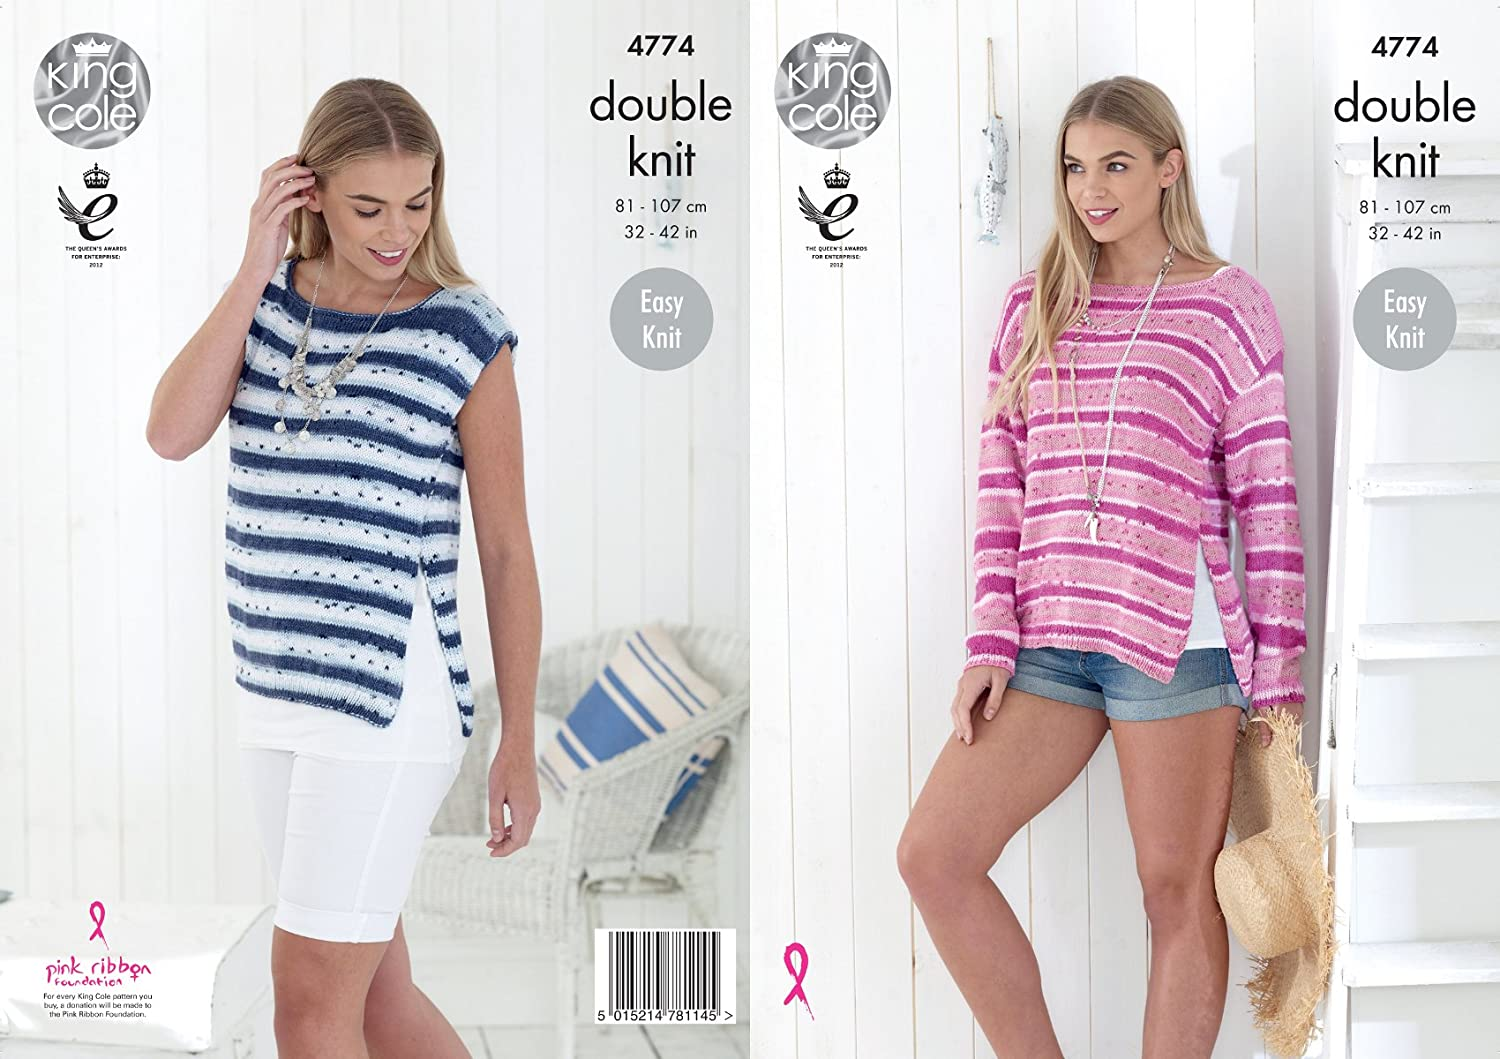 4c9f4de5a9e2 King Cole 4774 Knitting Pattern Womens Easy Knit Top and Sweater in King  Cole Cottonsoft Crush DK  Amazon.co.uk  Kitchen   Home